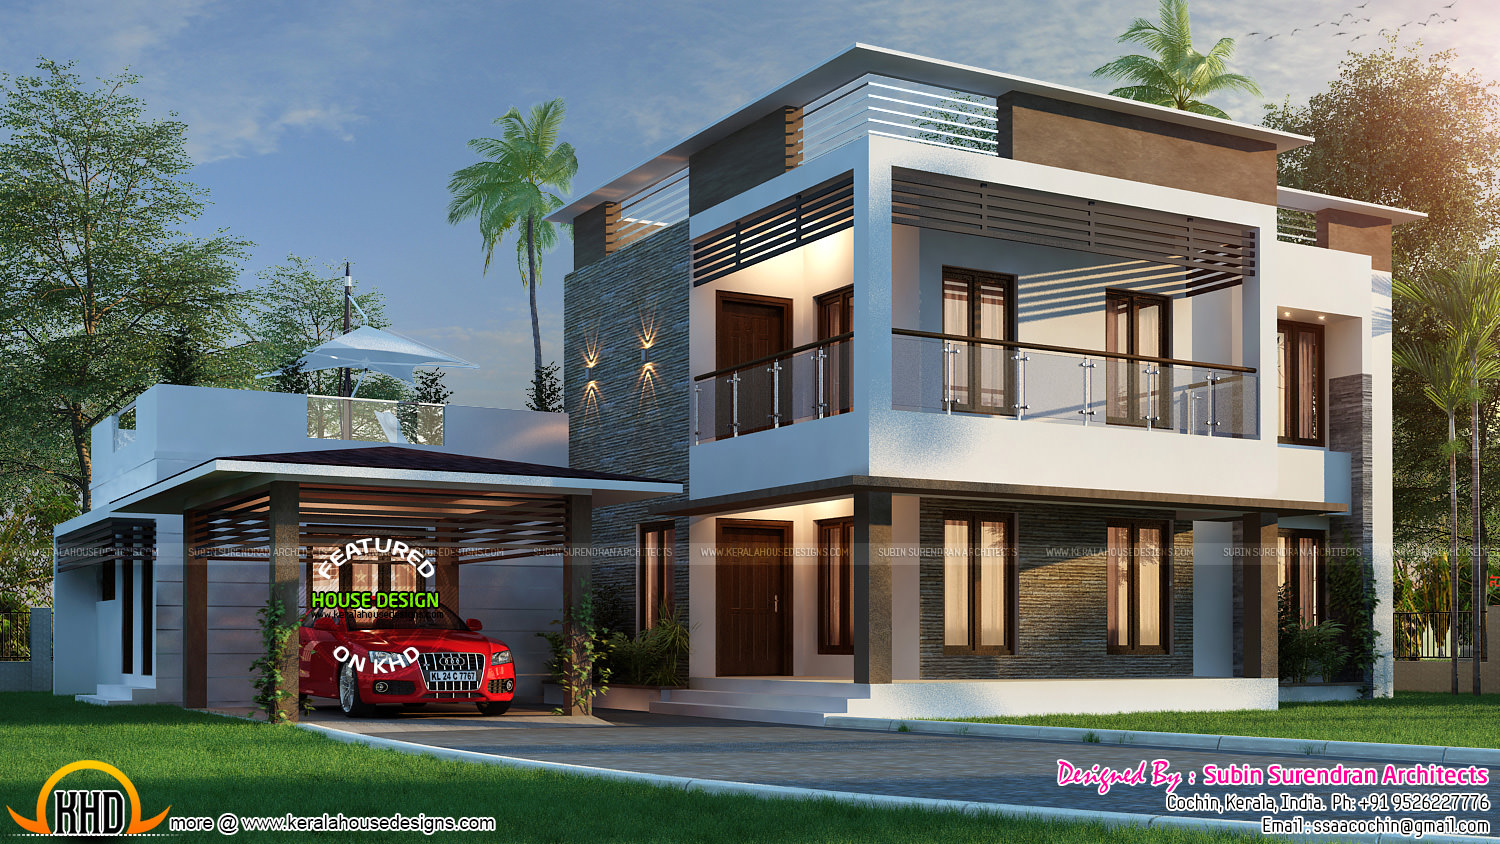 New house plans in kerala 2017 for House plans in kerala